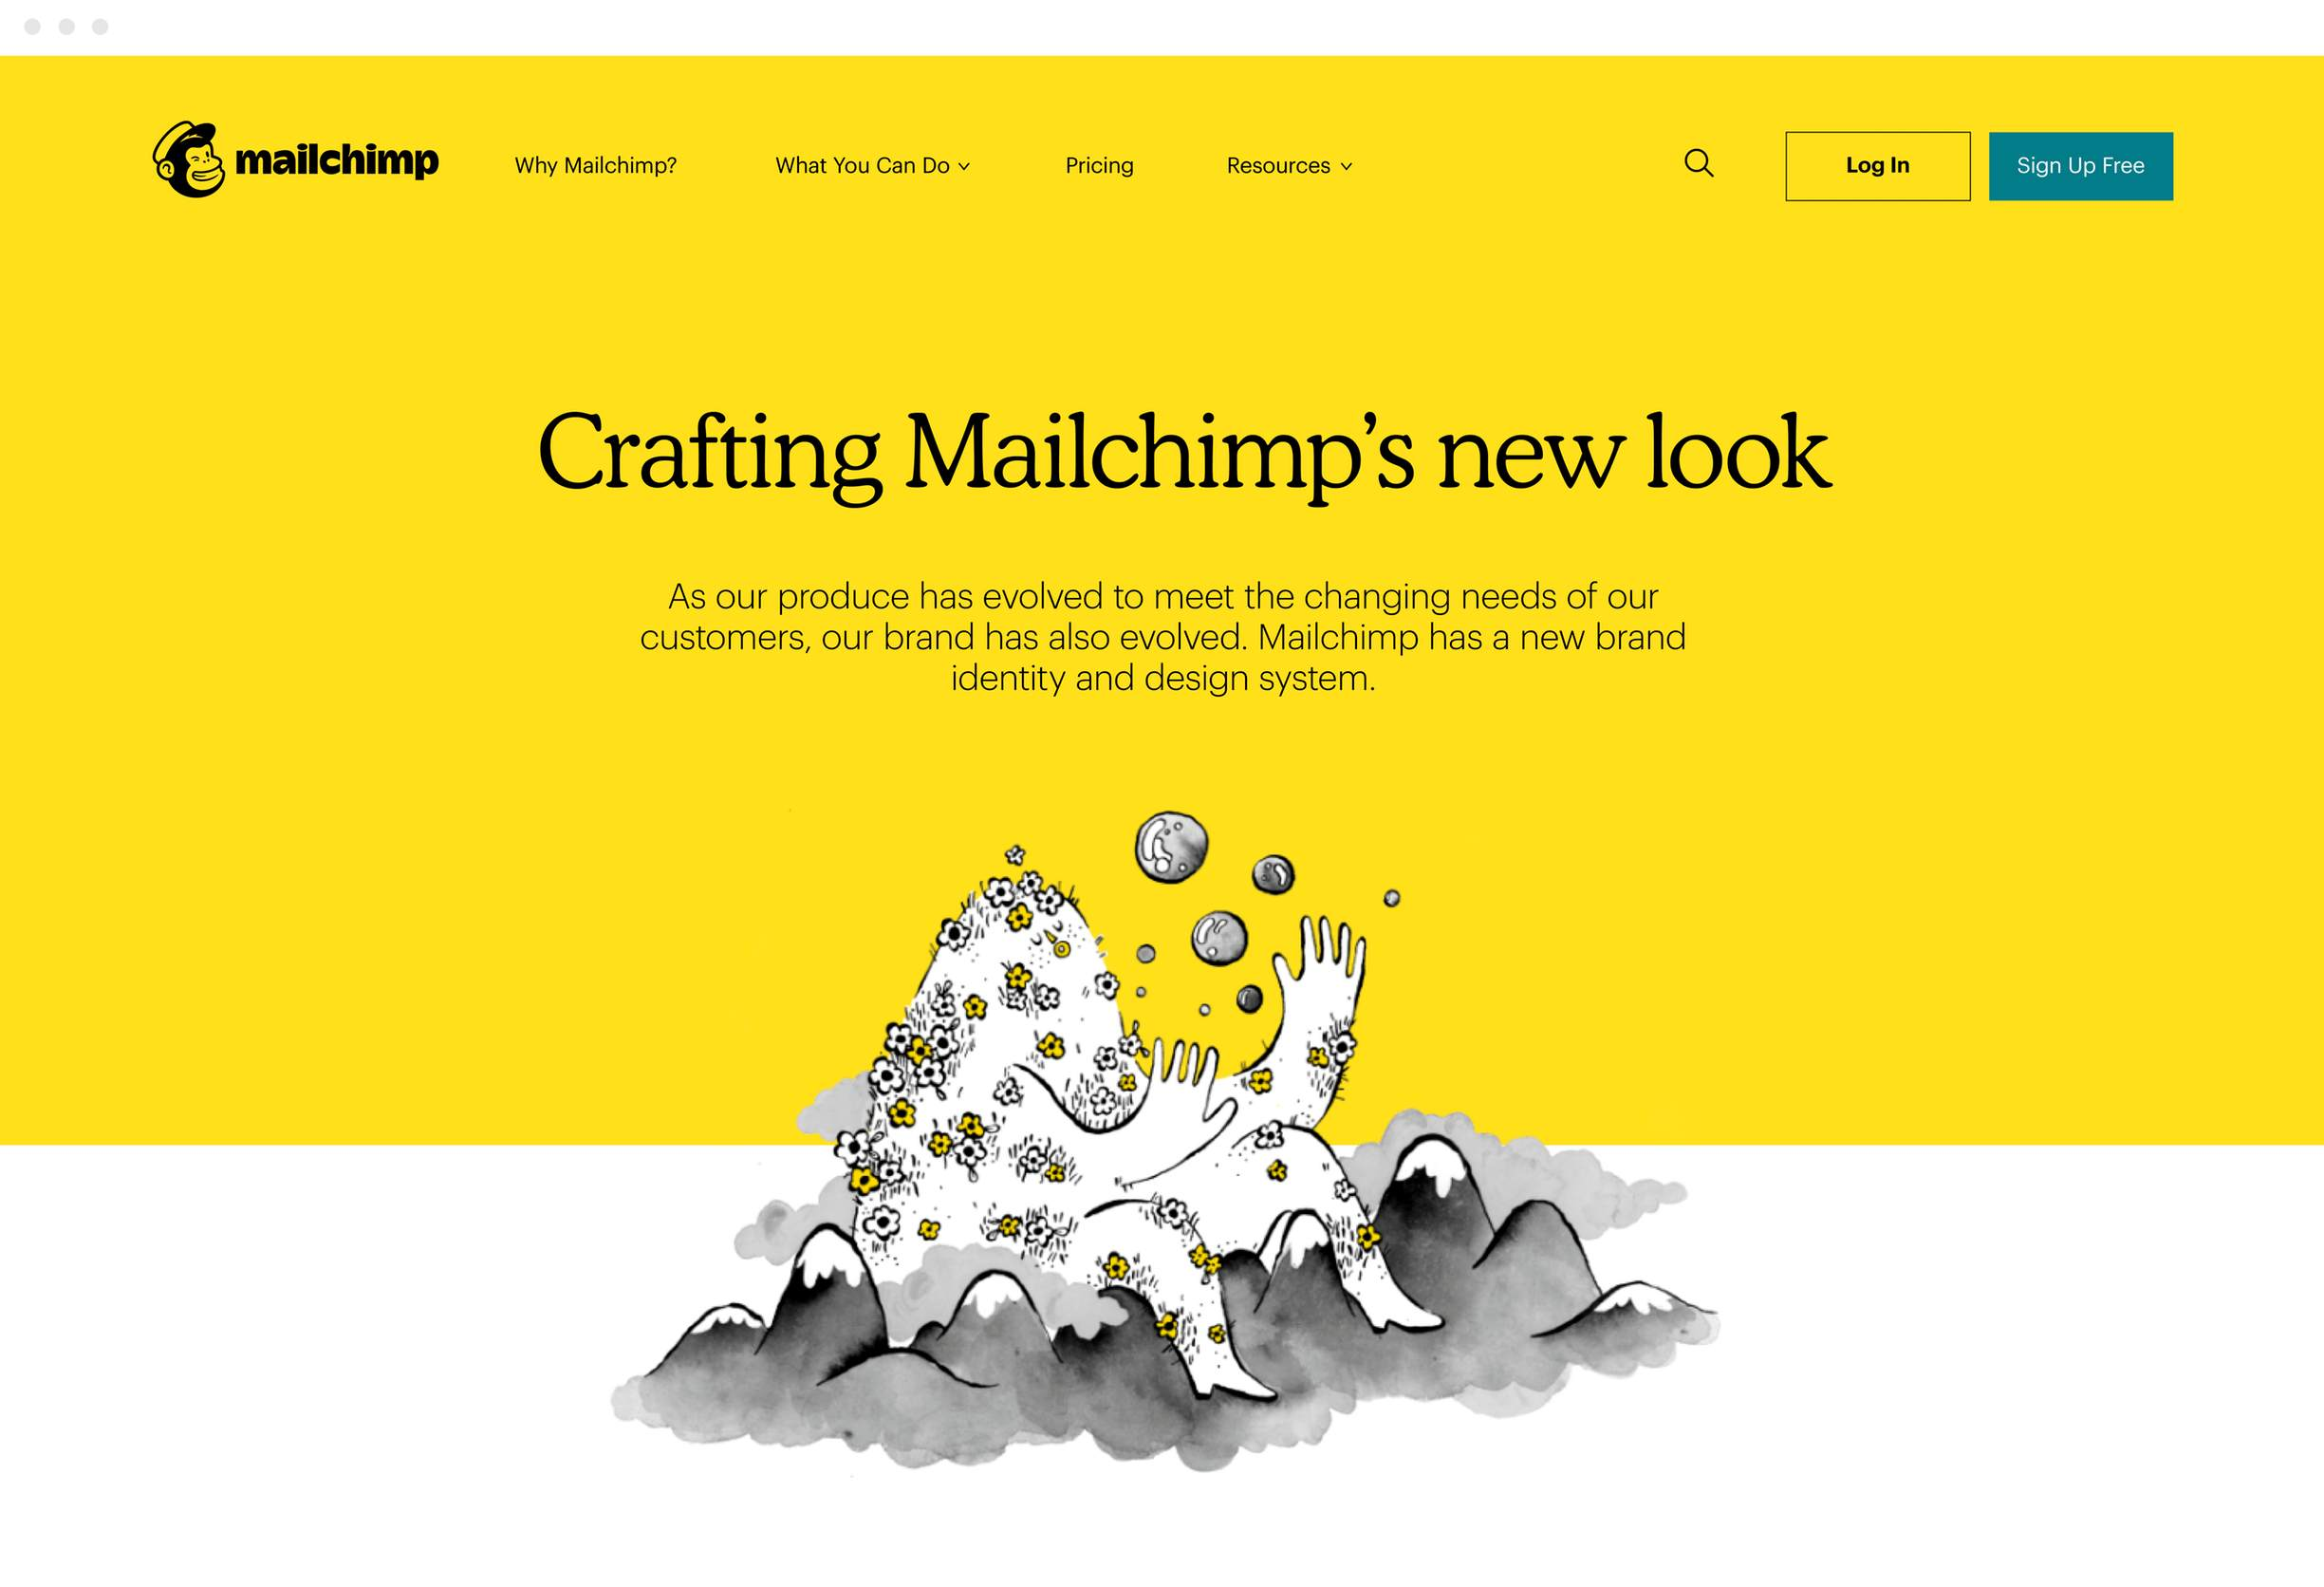 The subtle technique that Mailchimp uses to emotionally hook